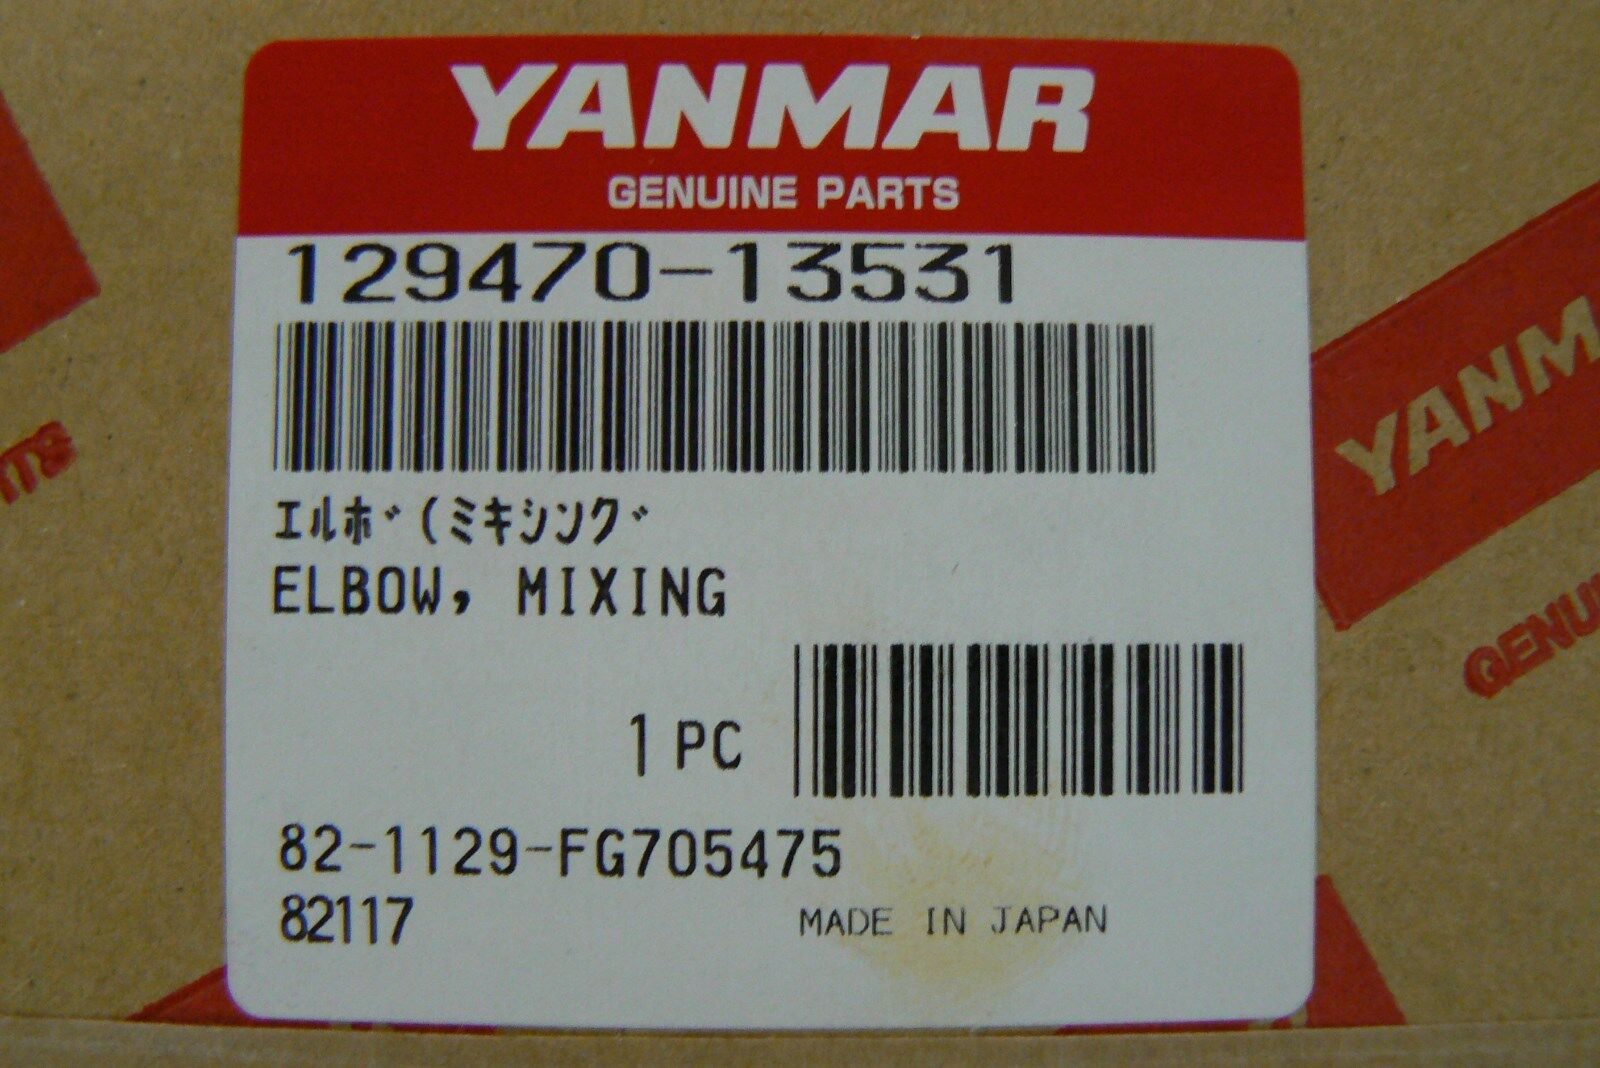 YANAMAR EXHAUST ELBOW / MIXING ELBOW PN# 129470-13531 / 129470-13530